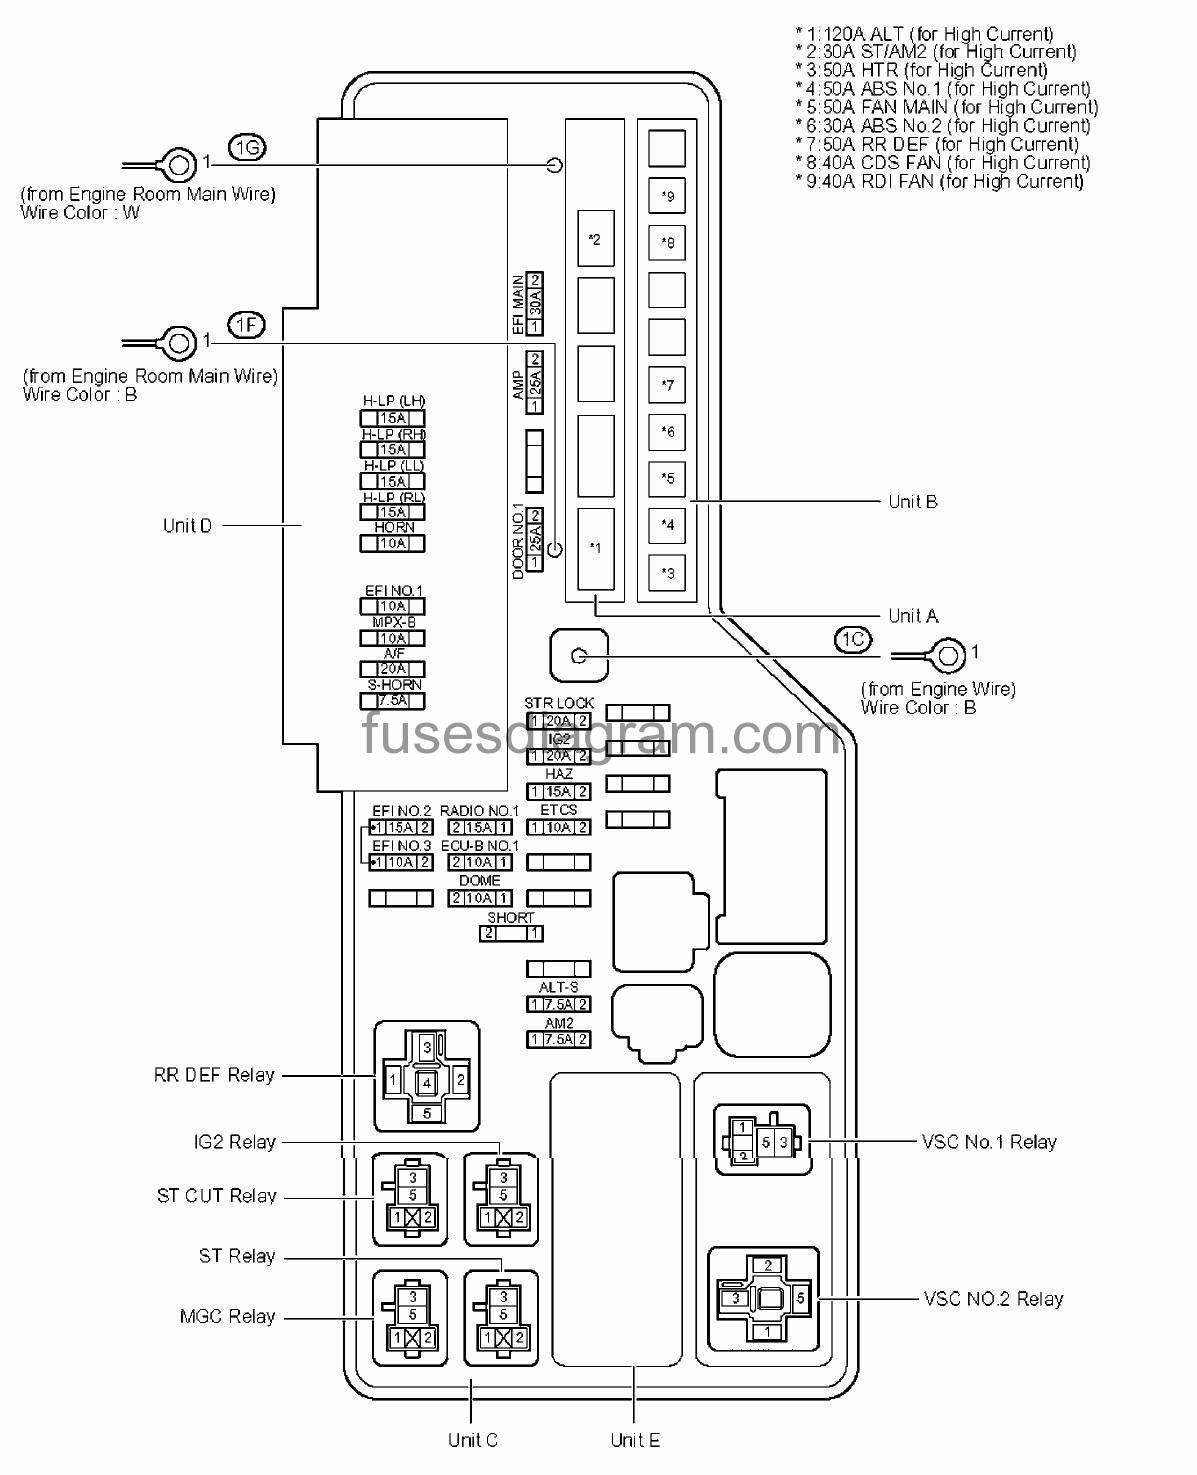 hight resolution of toyota camry etc s electrical wiring diagram wiring diagram load 2008 toyota camry electrical wiring diagram